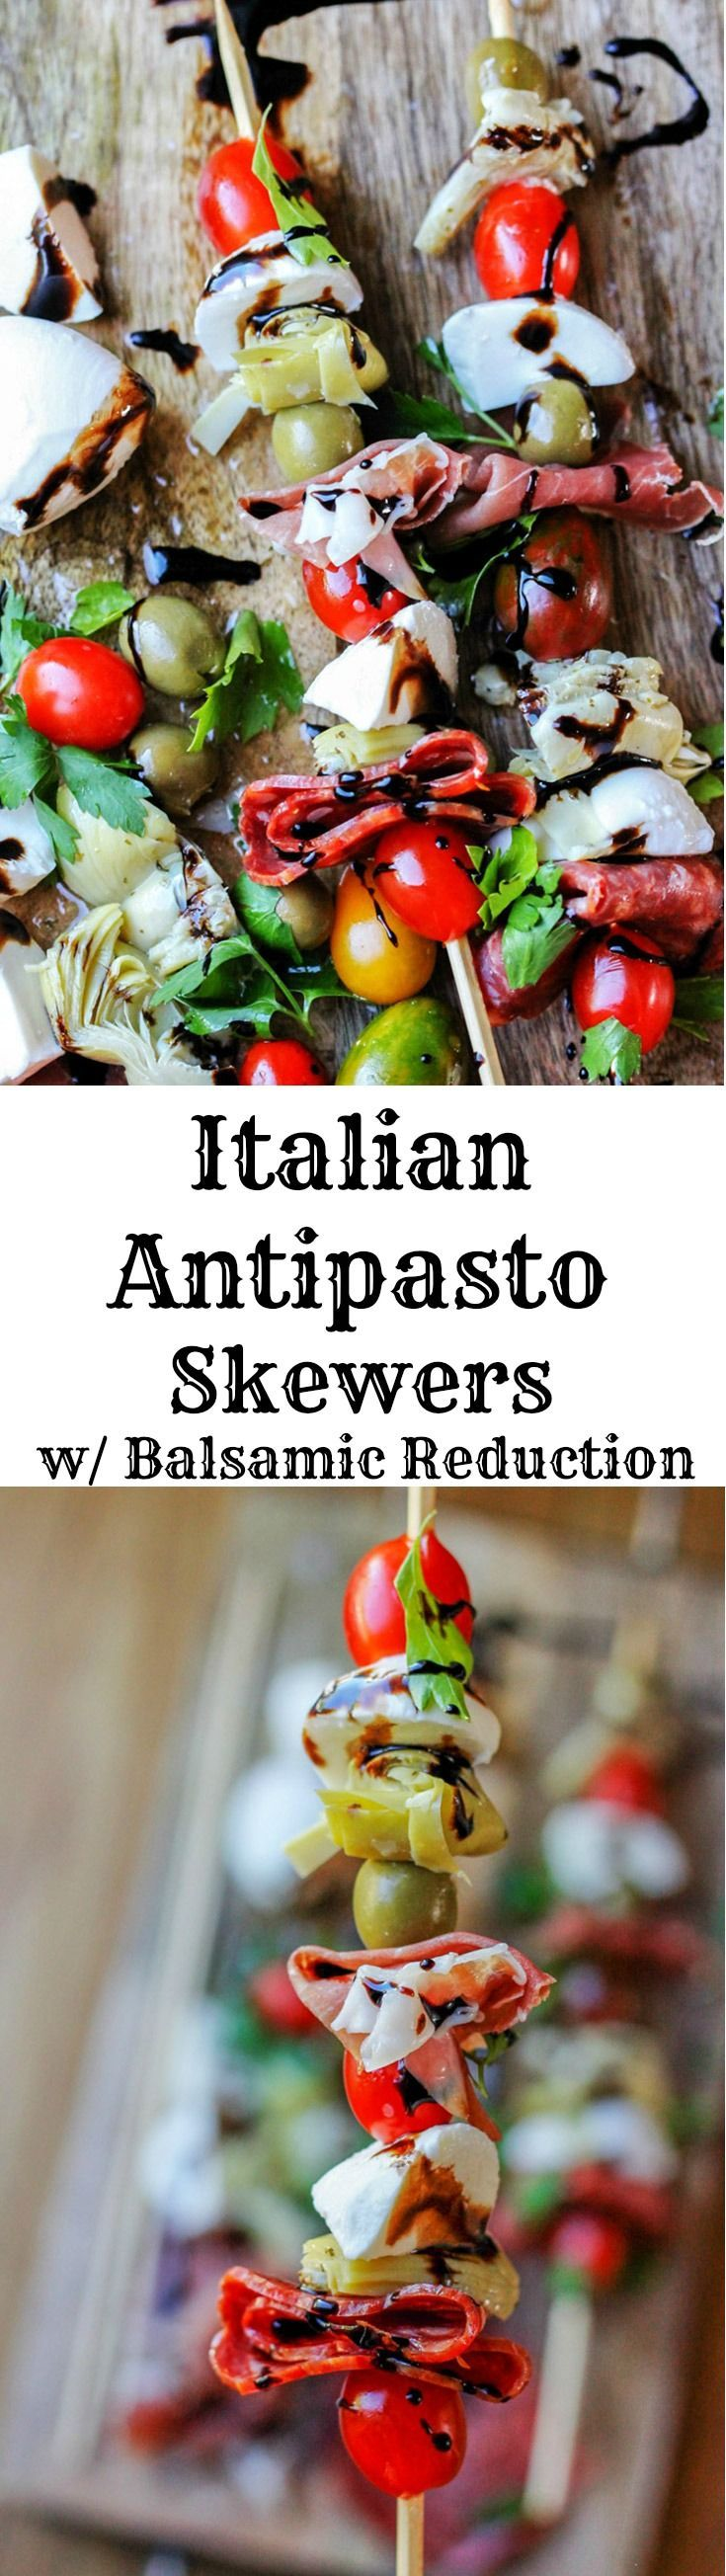 Italian Antipasto Skewers are perfect little bites of traditional Italian appetizer on a stick. Delicious combination of cured meats, mozzarella balls, marinated artichoke hearts, cherry tomatoes and olives drizzled with the balsamic reduction makes for one awesome crowd pleaser.